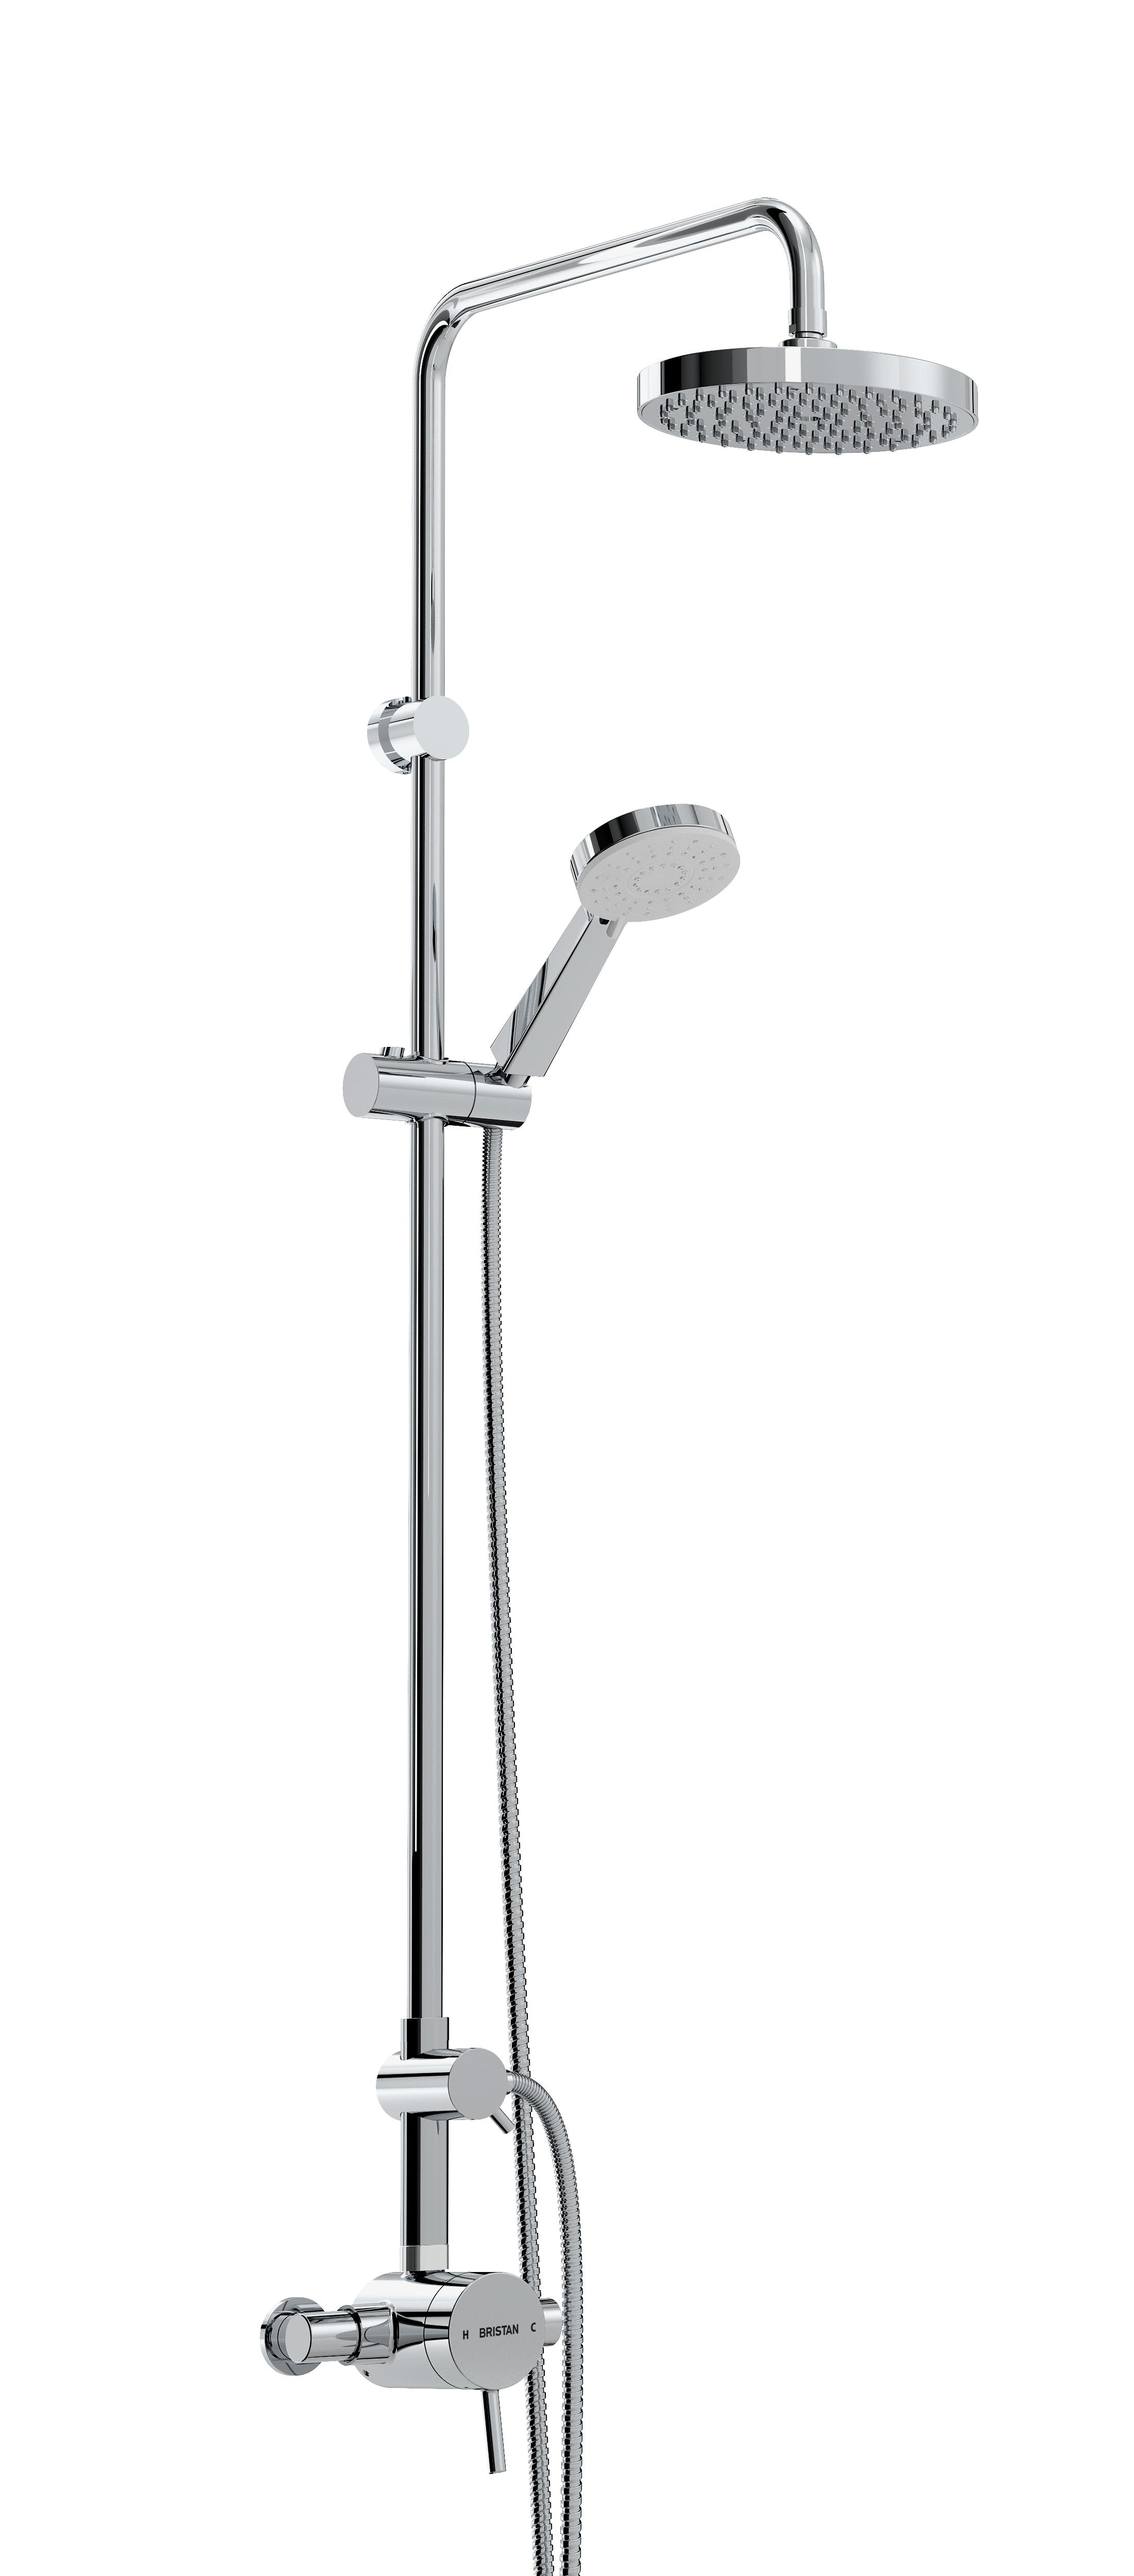 BRISTAN PRISM THERMOSTATIC EXPOSED SINGLE CONTROL SHOWER VALVE WITH DIVERTER AND RIGID RISER KIT - PM2 SQSHXDIV C